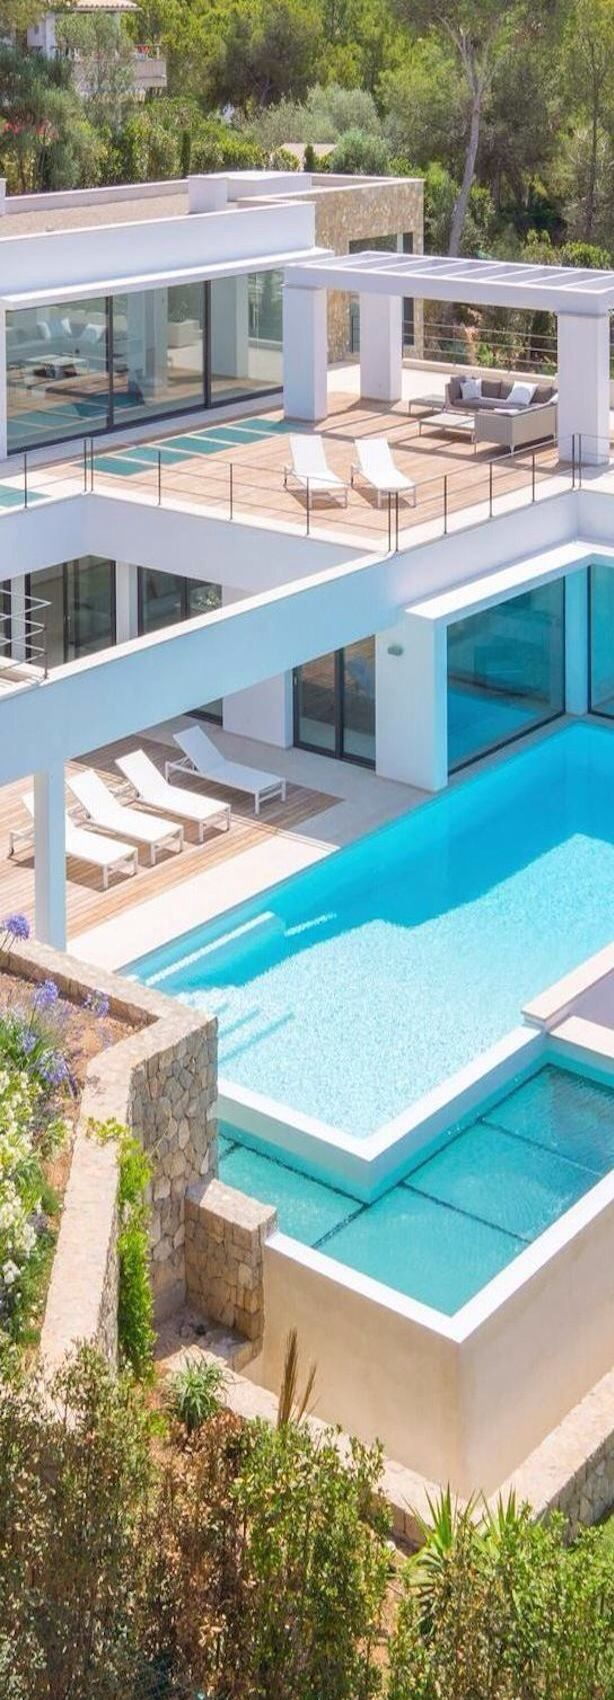 Modern beach house #swimmingpool